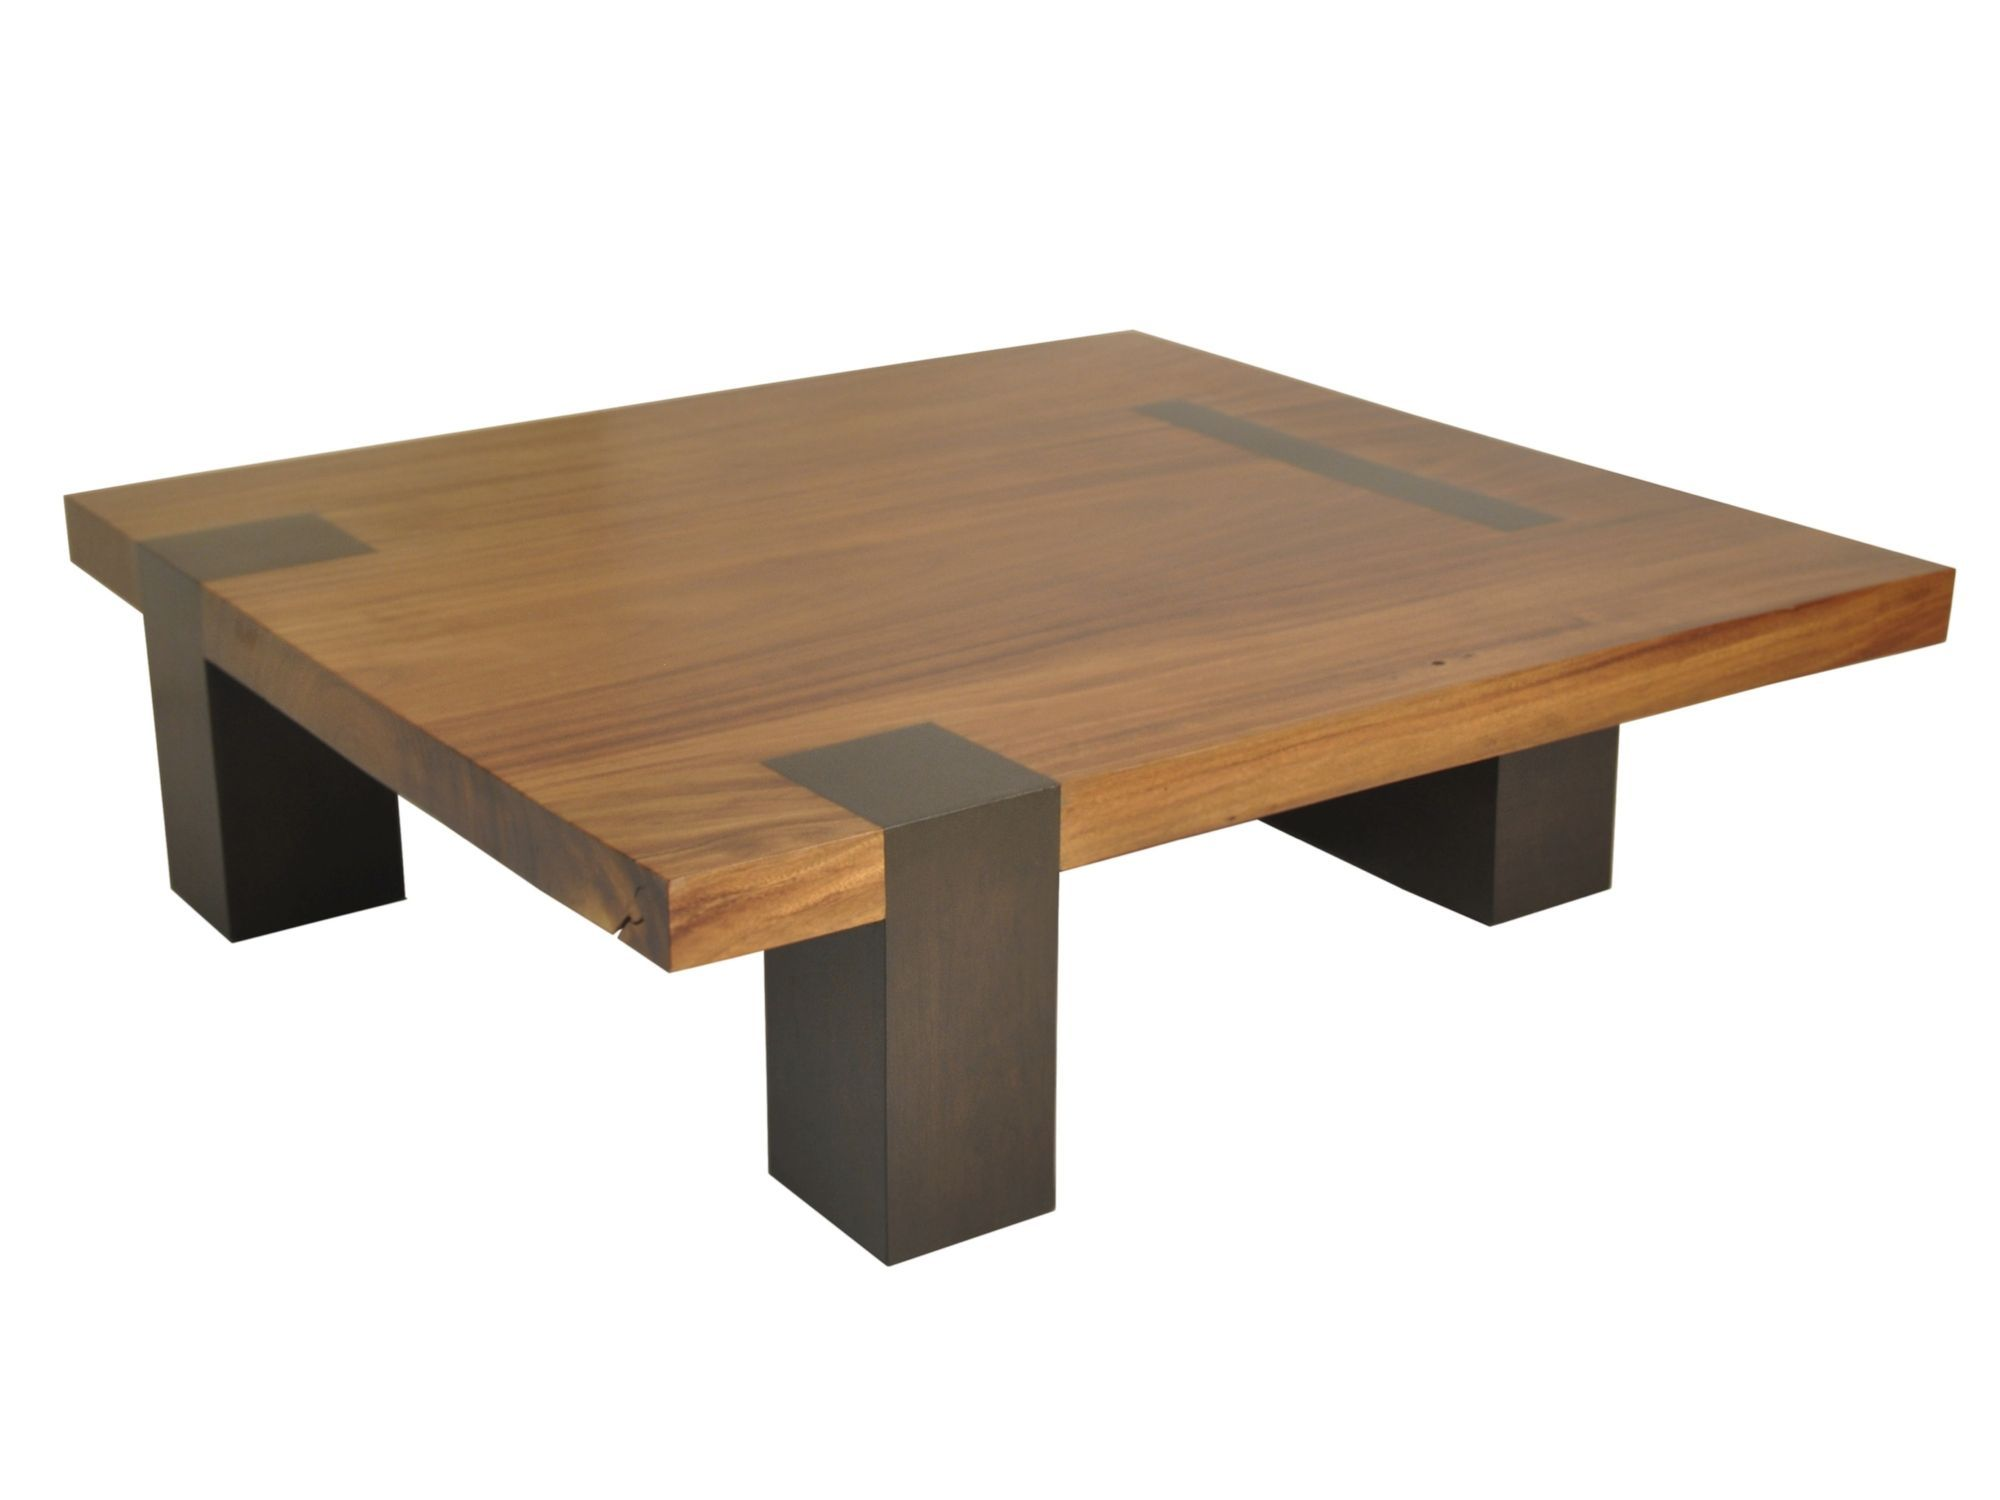 Attirant Buy Square Tamburil Coffee Table   Walnut Legs By Rotsen Furniture    Made To Order Designer Furniture From Dering Hallu0027s Collection Of  Industrial ...